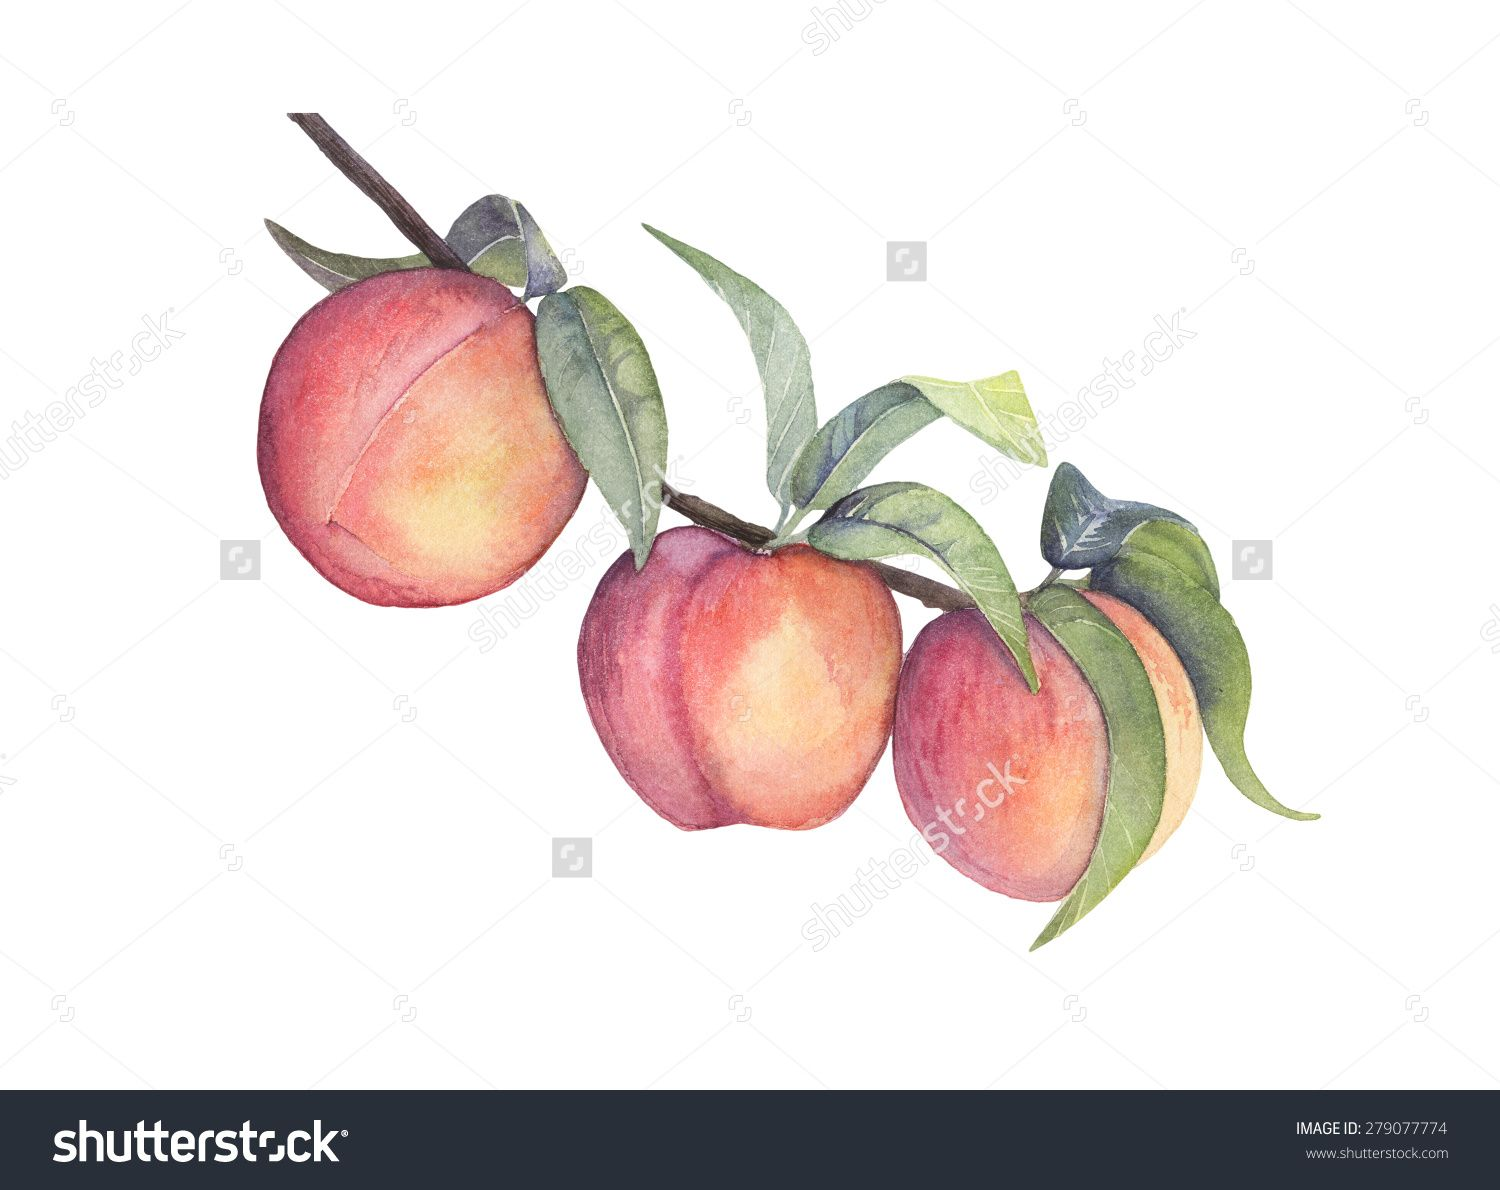 Watercolor Peach Branch With Fruits Stock Photo 279077774 Shutterstock